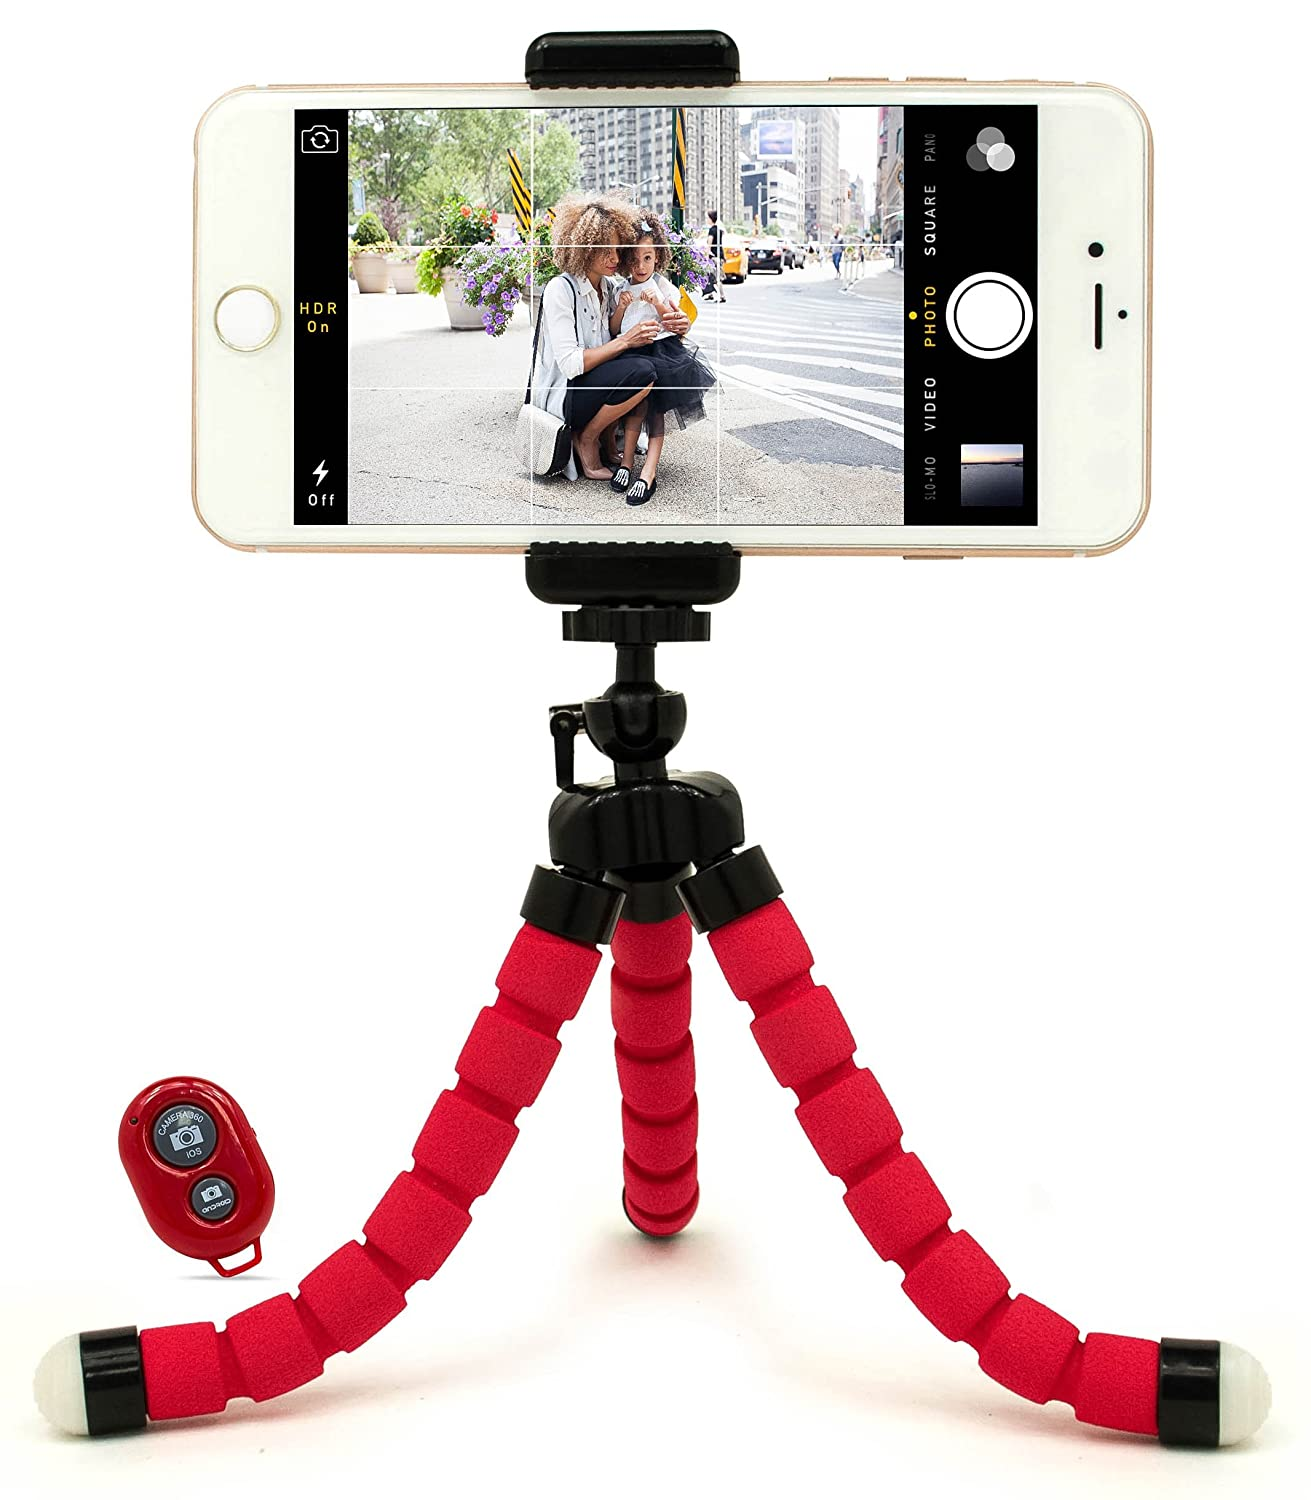 Bastex Universal Compact Flexible Octopus Style Blue Tripod Stand Holder/Mount with Adapter for Smartphone / GoPro Hero All Versions - Includes Remote W2: N 121B BlueSelfieFlexibleStand ALE